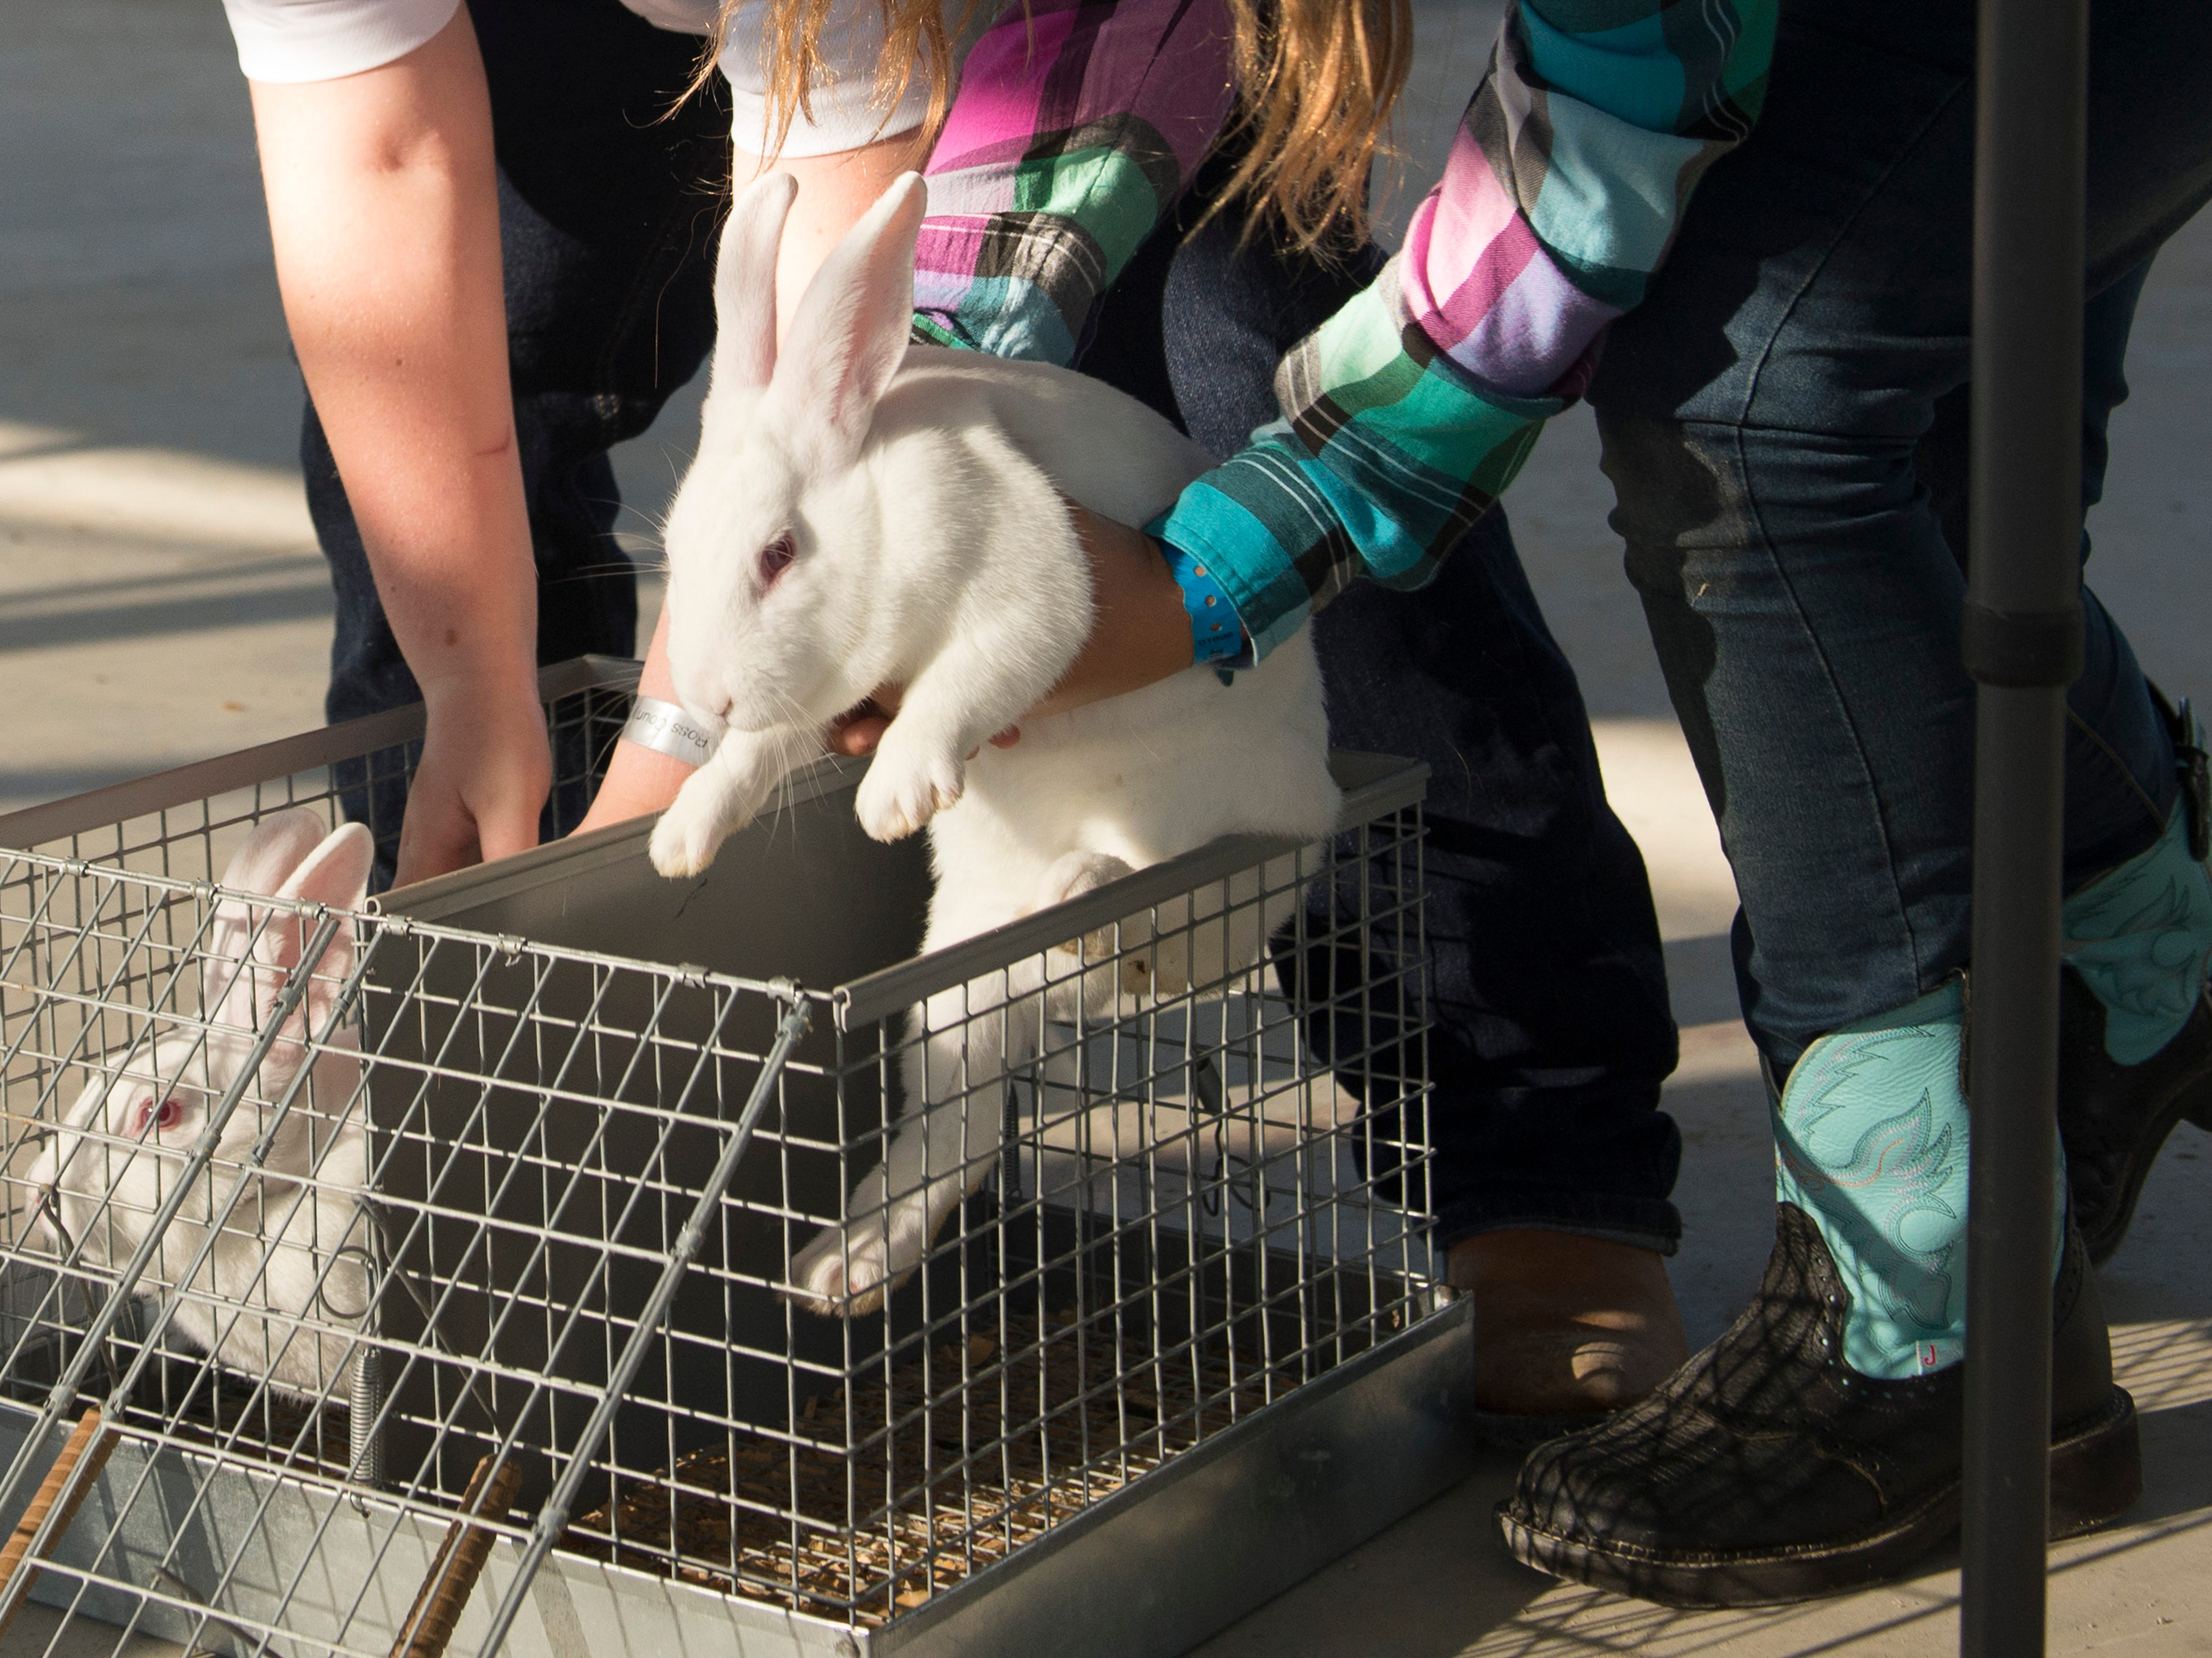 Junior competitors retrieve rabbits from their enclosures during the Small Animal Showman of Showmen Contest at the Ross County Fair on August 9, 2018 in Chillicothe, Ohio.